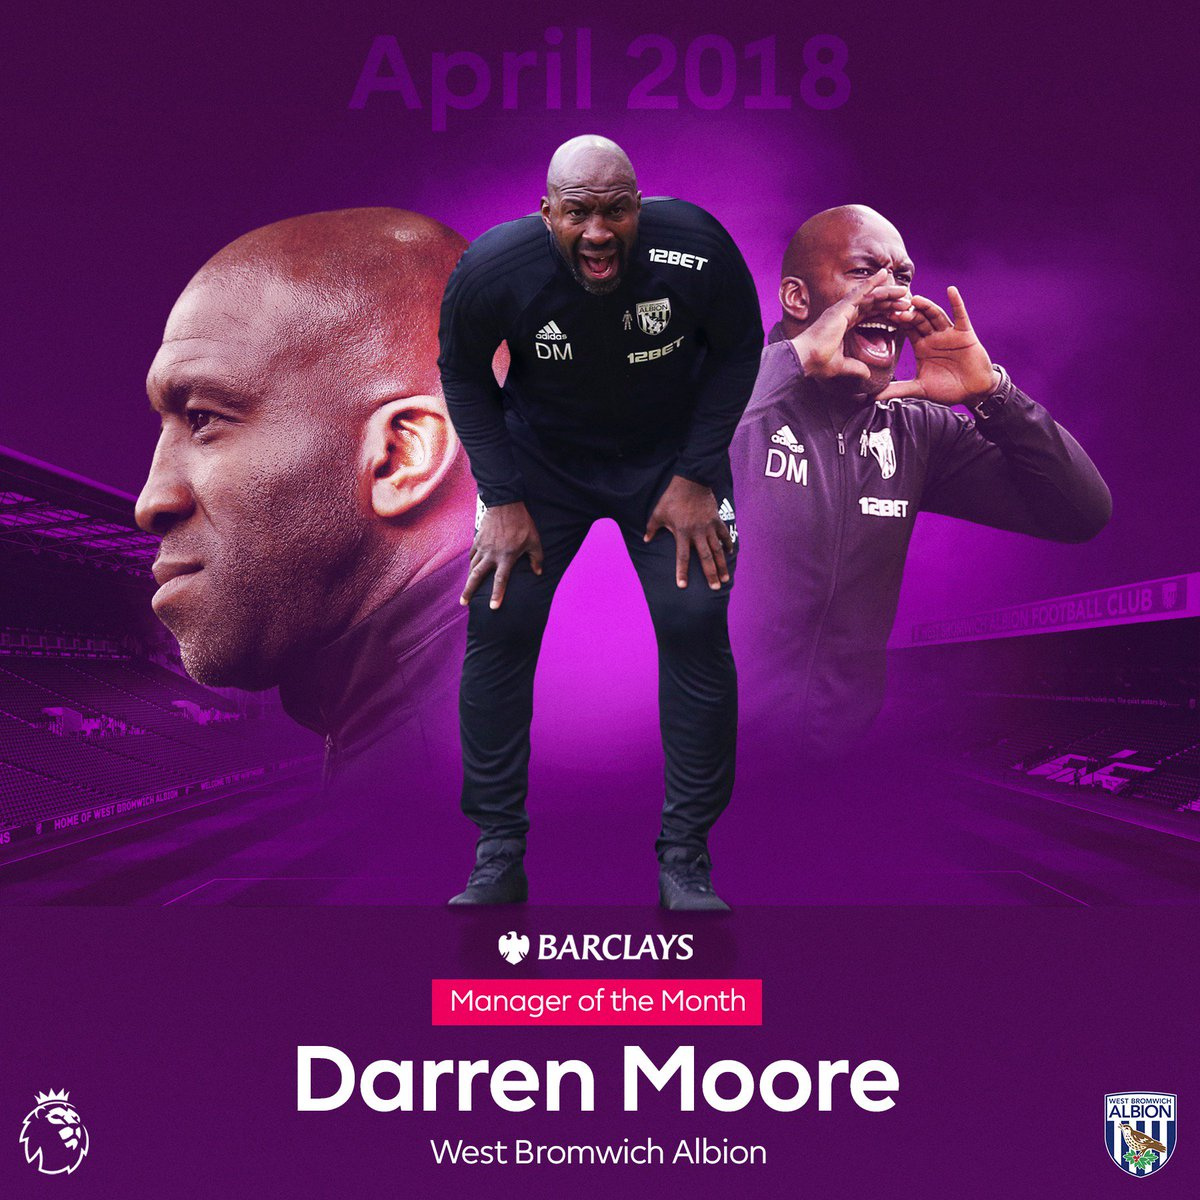 👏 🥇 👏   Congratulations @DarrenMooro - @BarclaysFooty Manager of the Month for April  #PLAwards